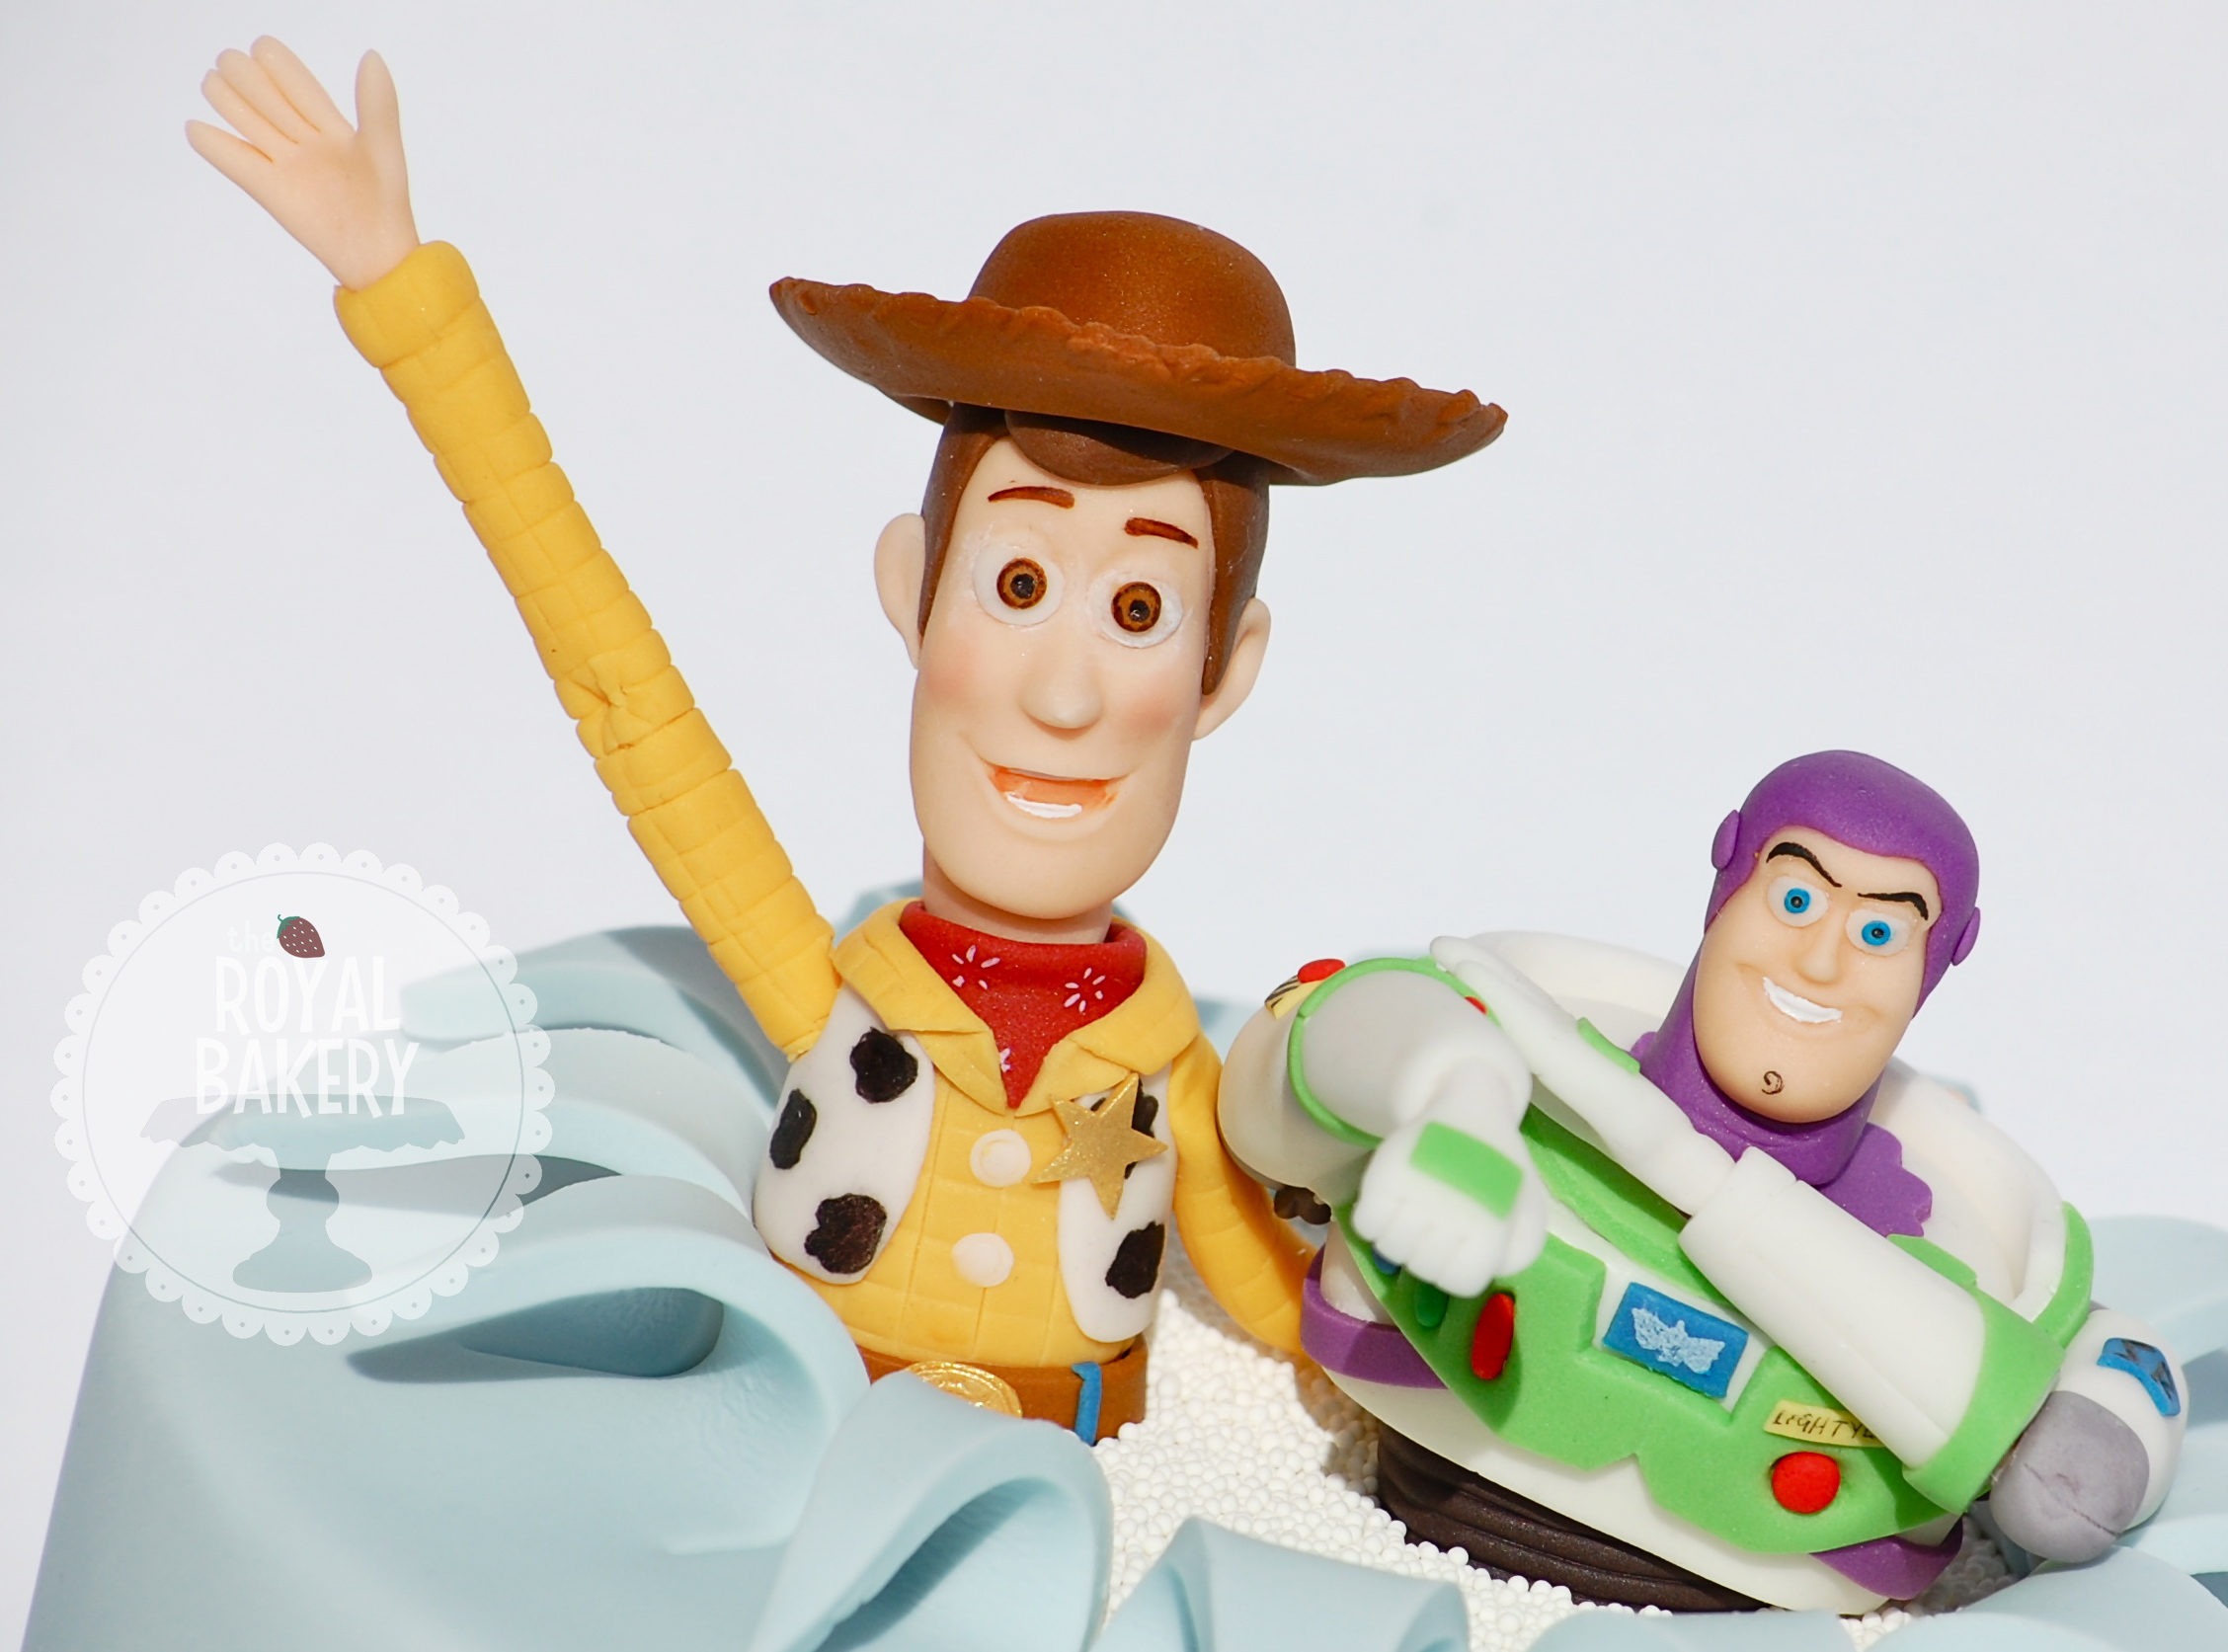 Colorful Toy Story Character Molded from Fondant